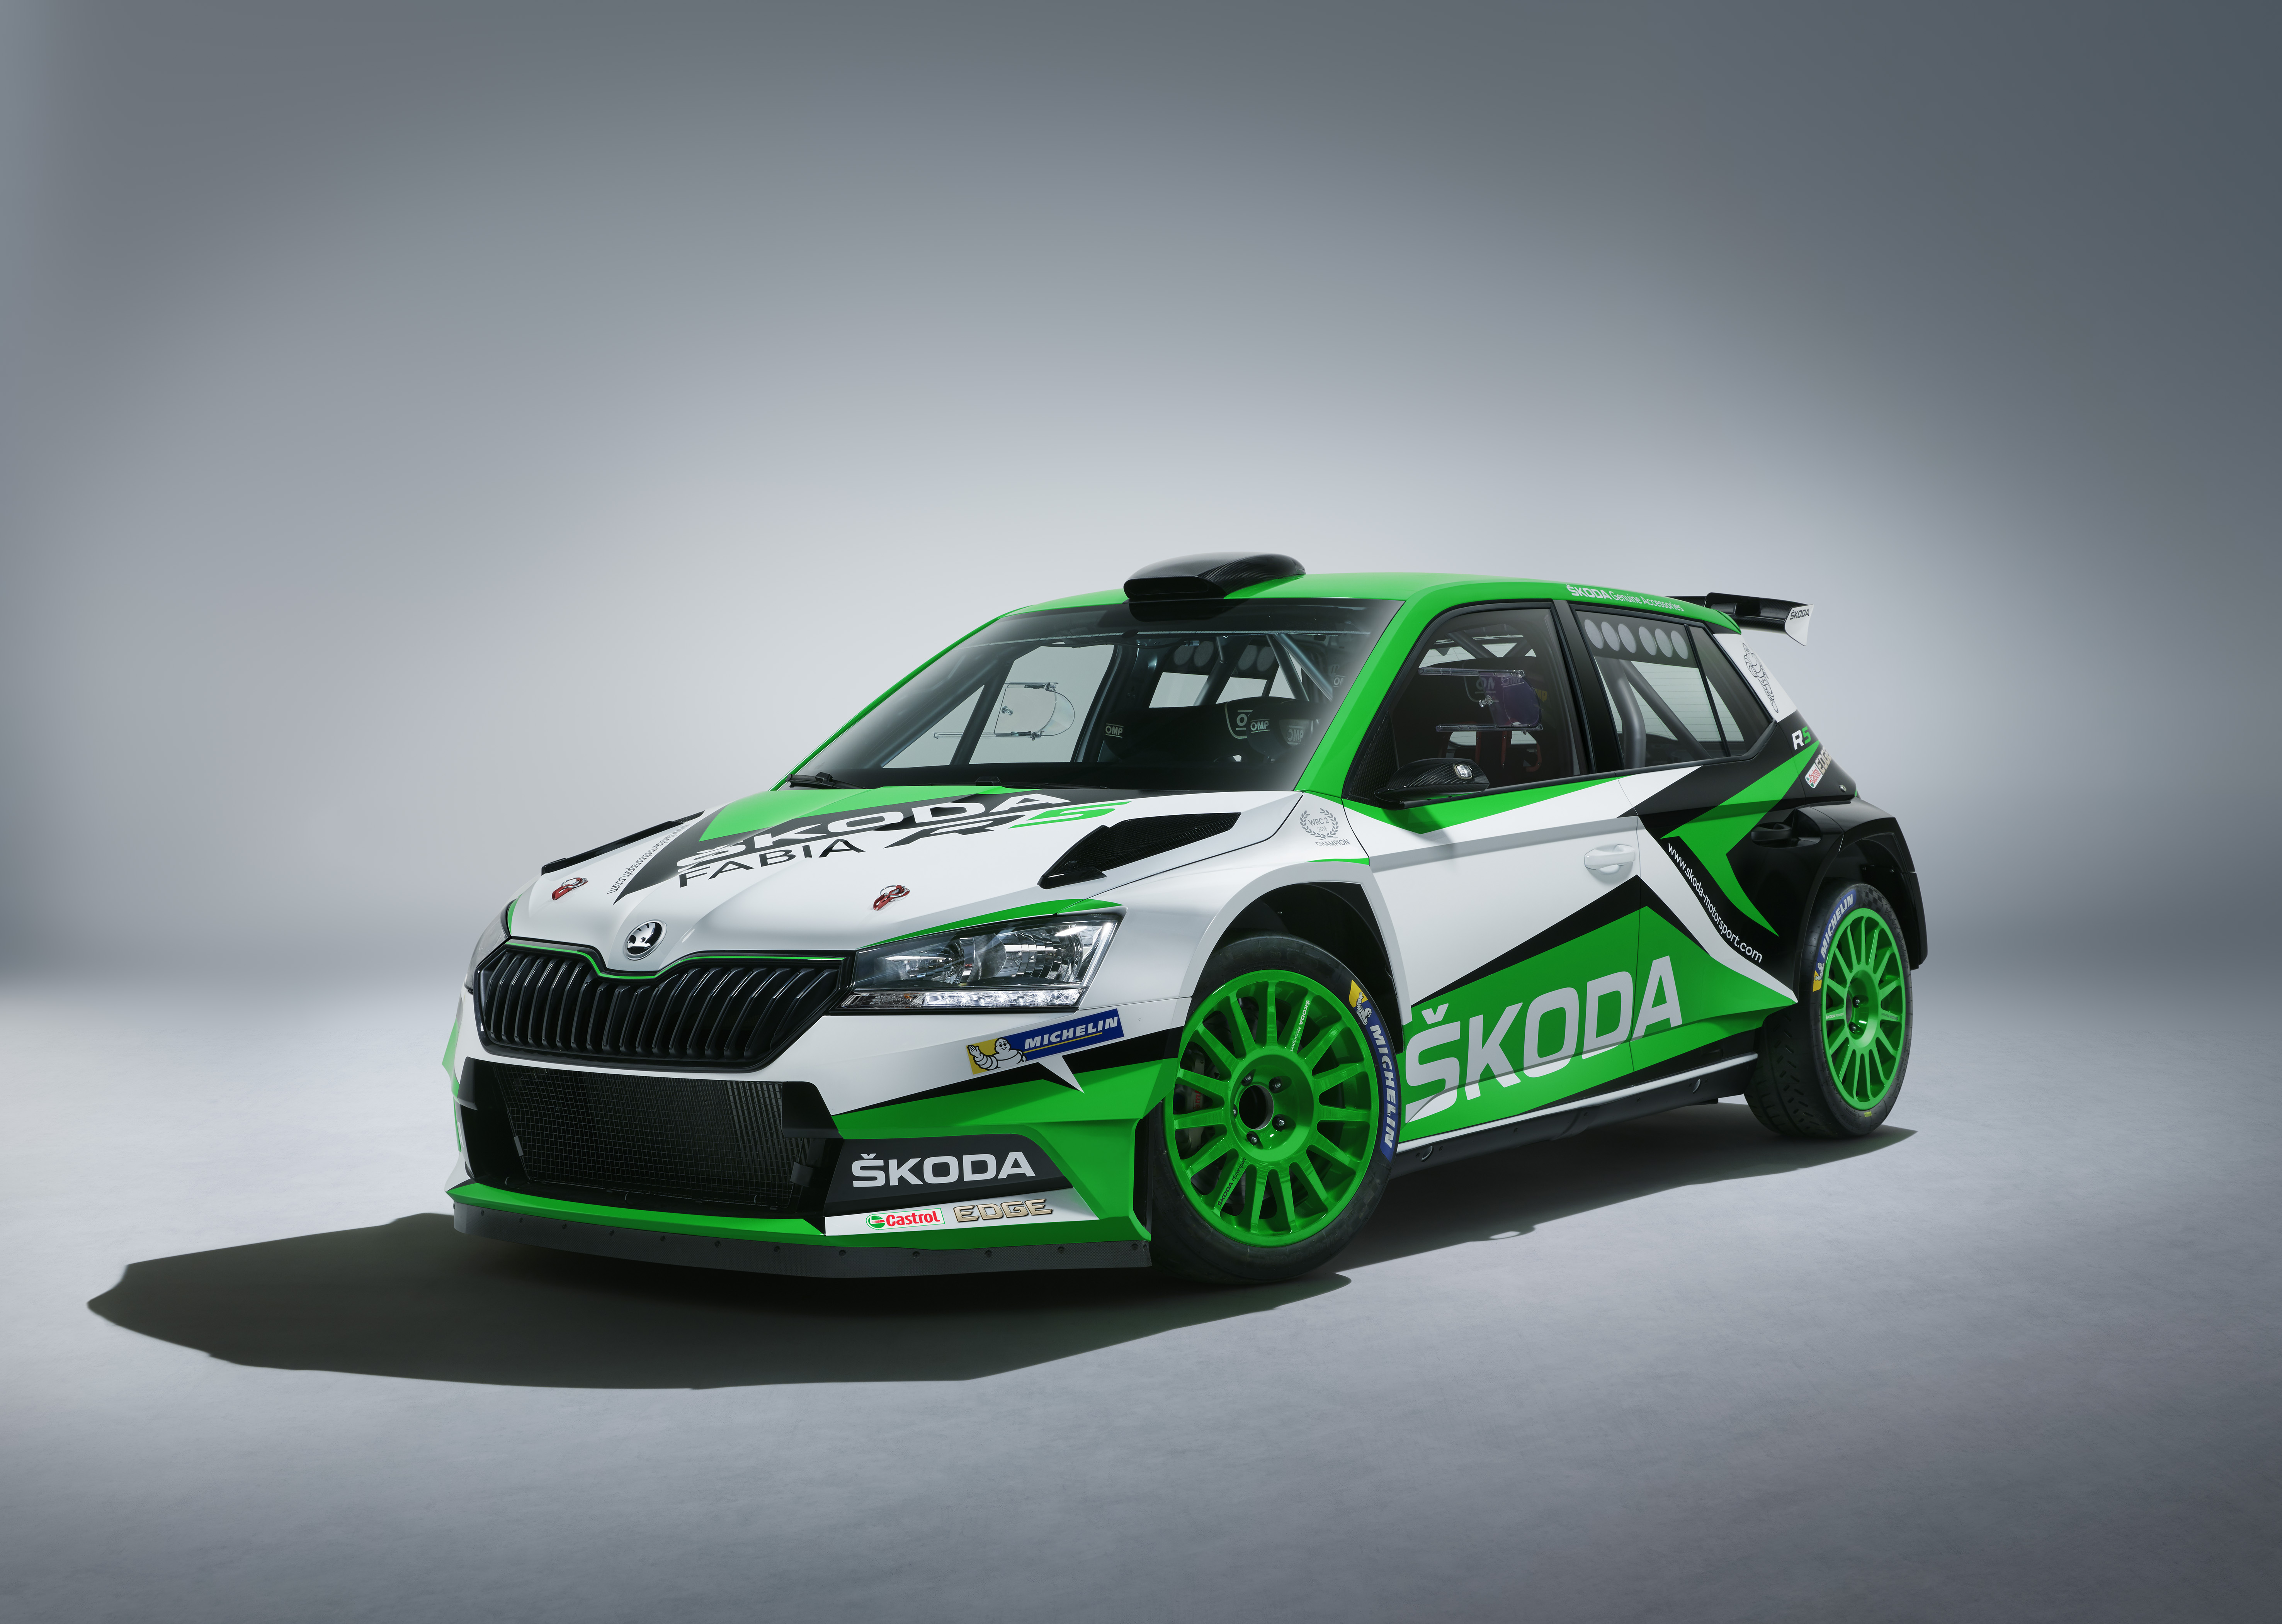 A New Face For The Winner Skoda Motorsport Presents A Design Study With Elements Of 2019 Fabia Skoda Motorsport